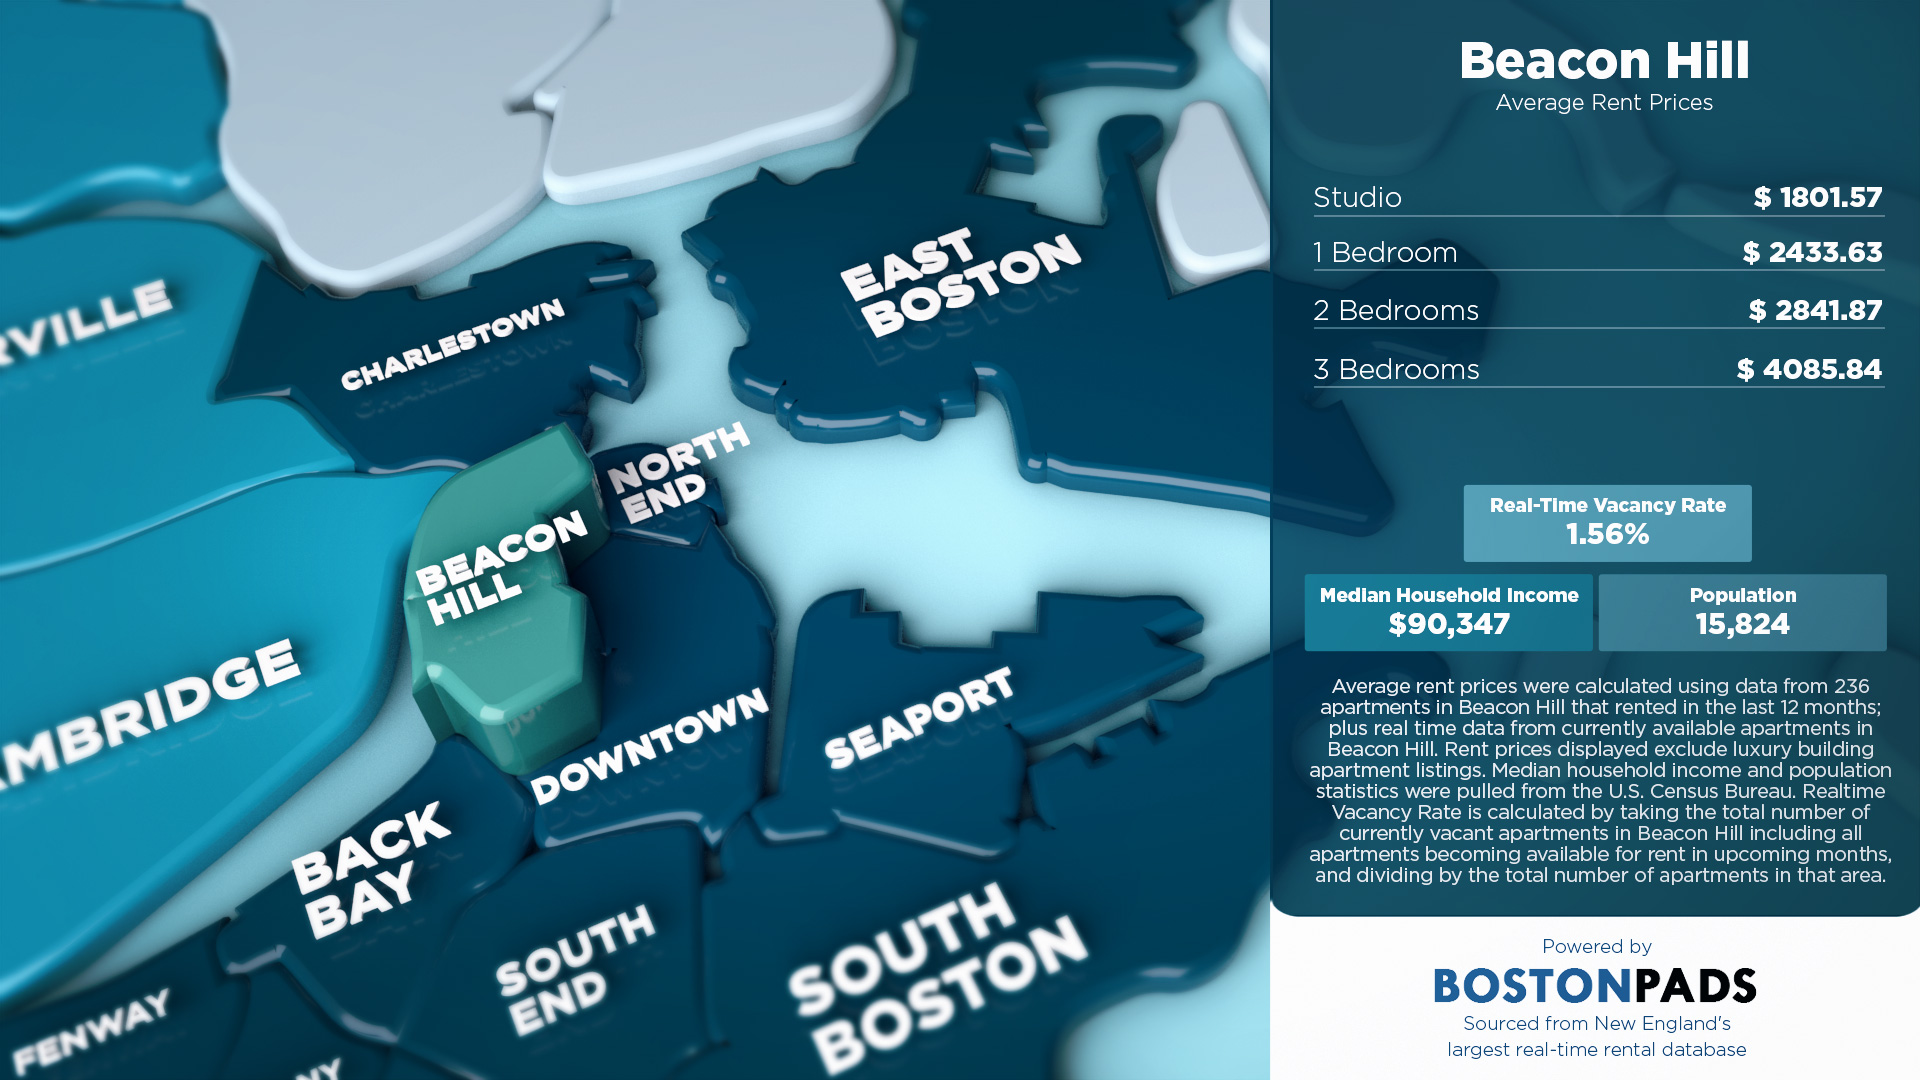 Average Rent Prices in Beacon Hill